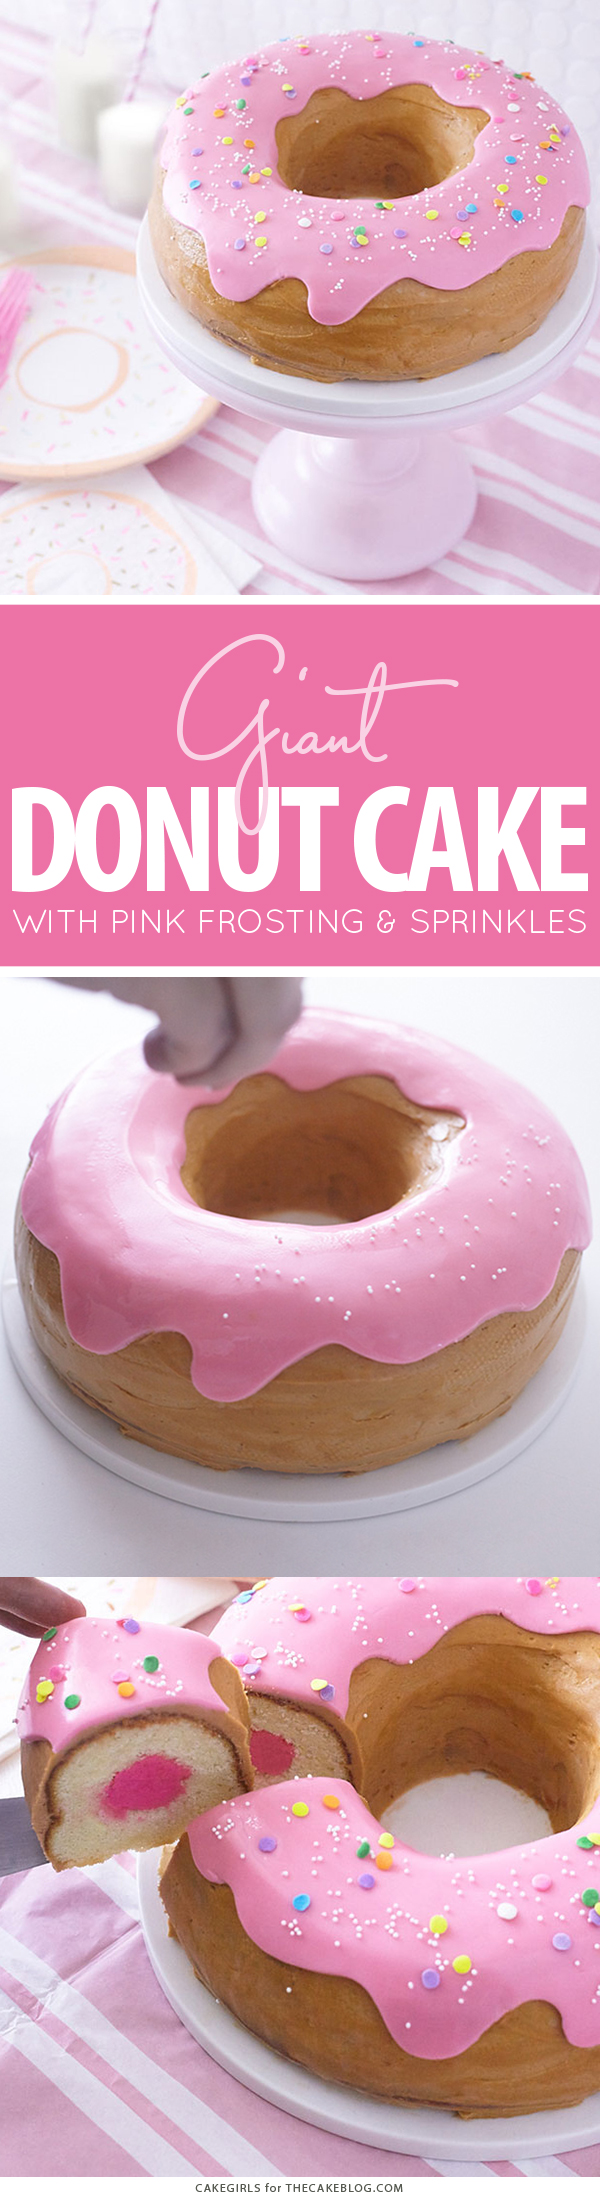 Giant Donut Cake! Learn how to make this adorable, sprinkle-coated, giant donut cake with a simple step-by-step tutorial | by Cakegirls for TheCakeBlog.com